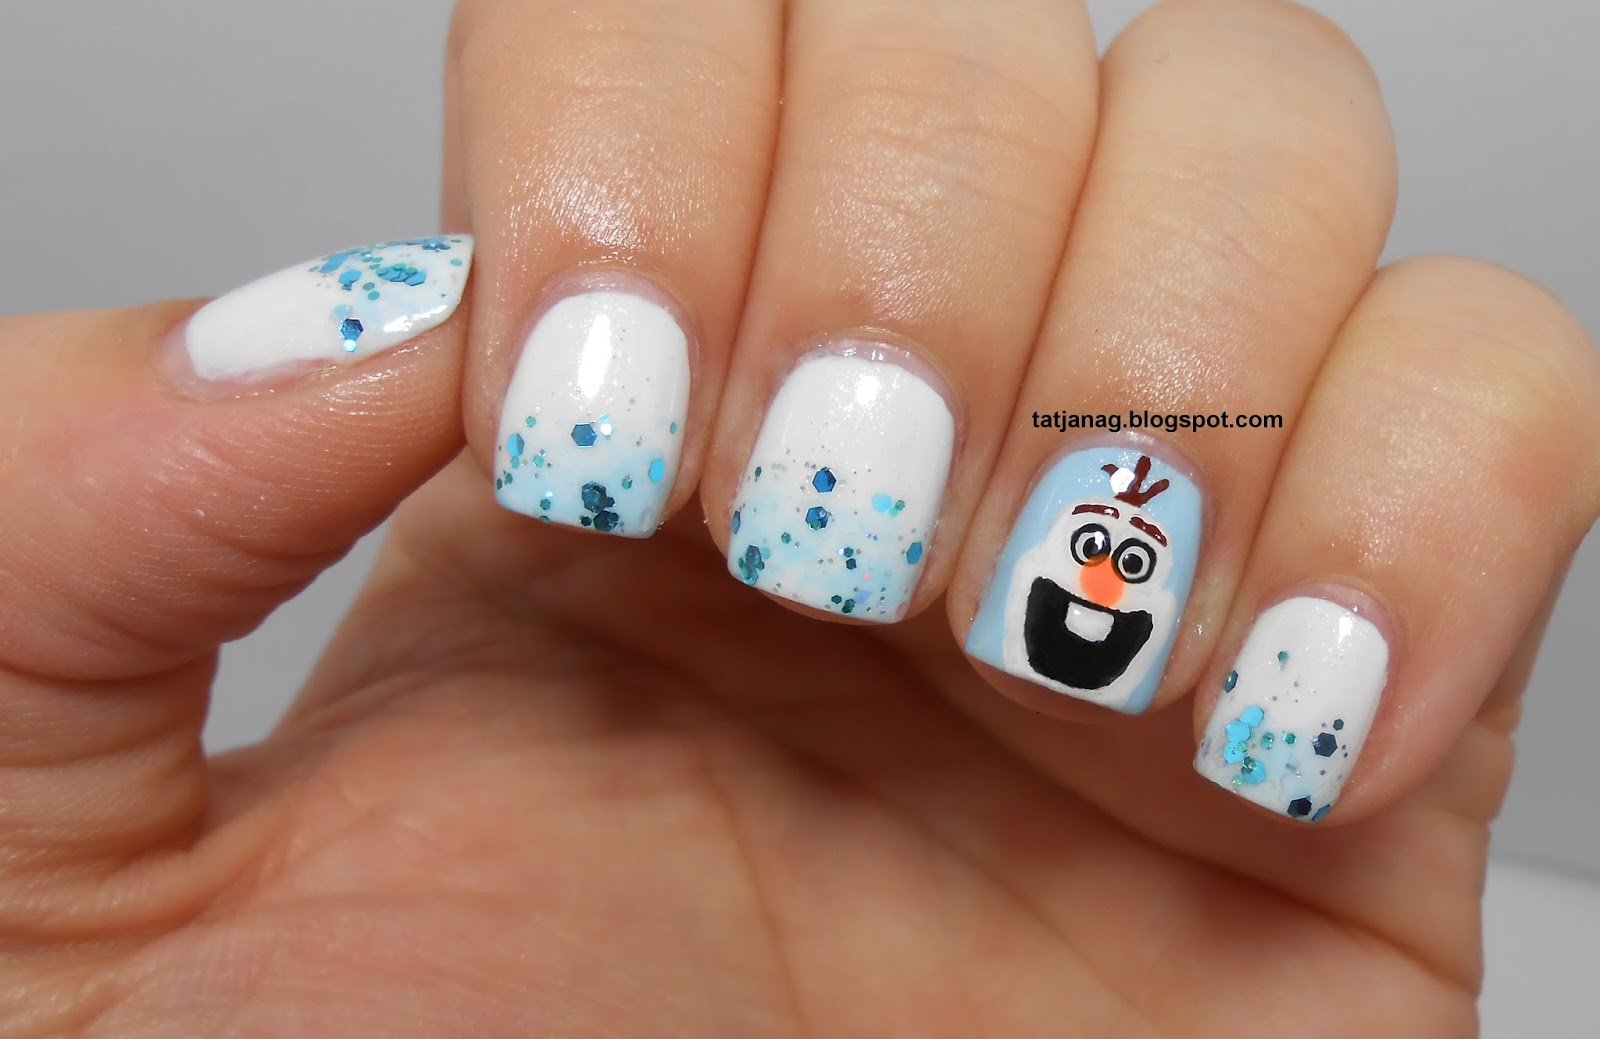 Frozen manicure with Olaf